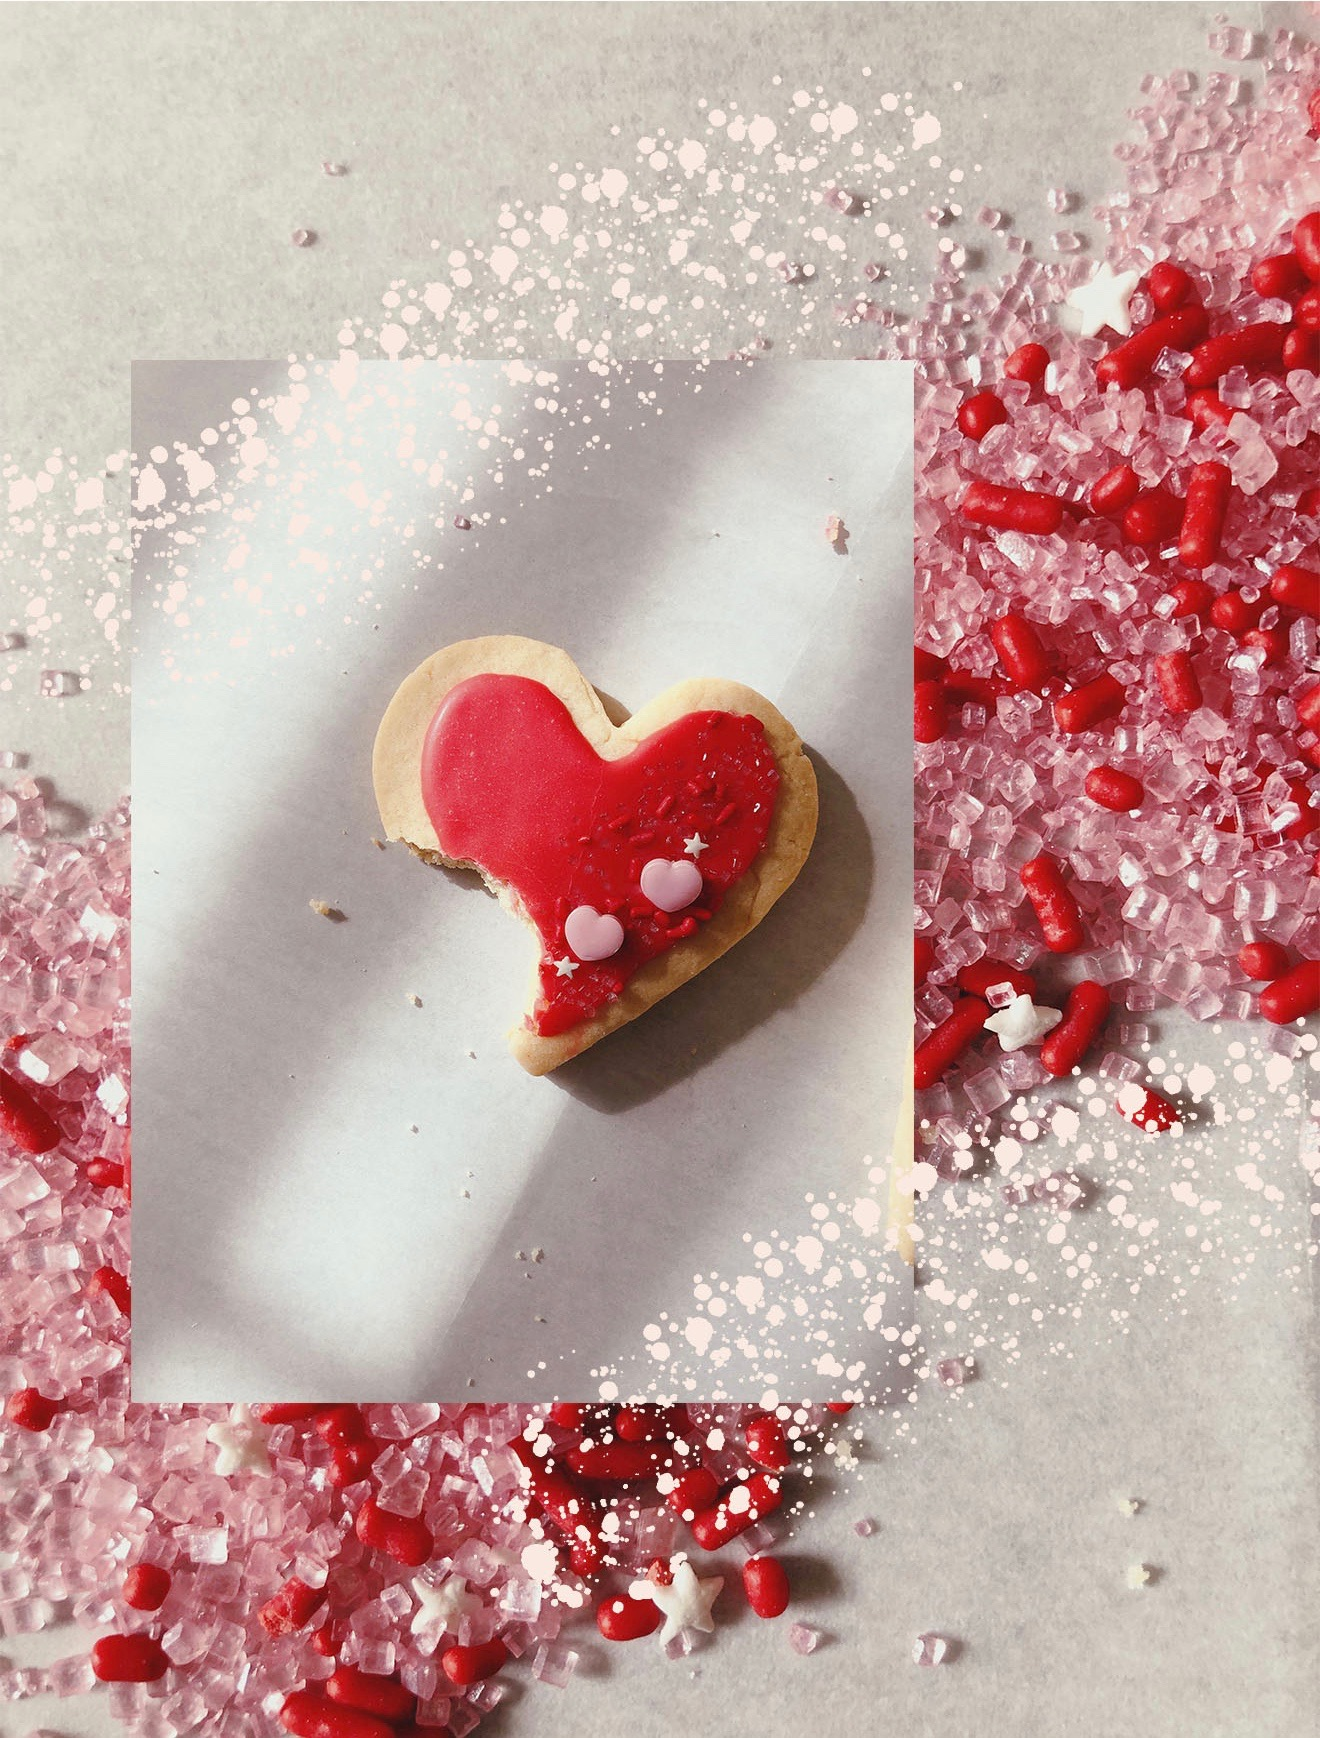 soft almond cookies vday2019.jpeg